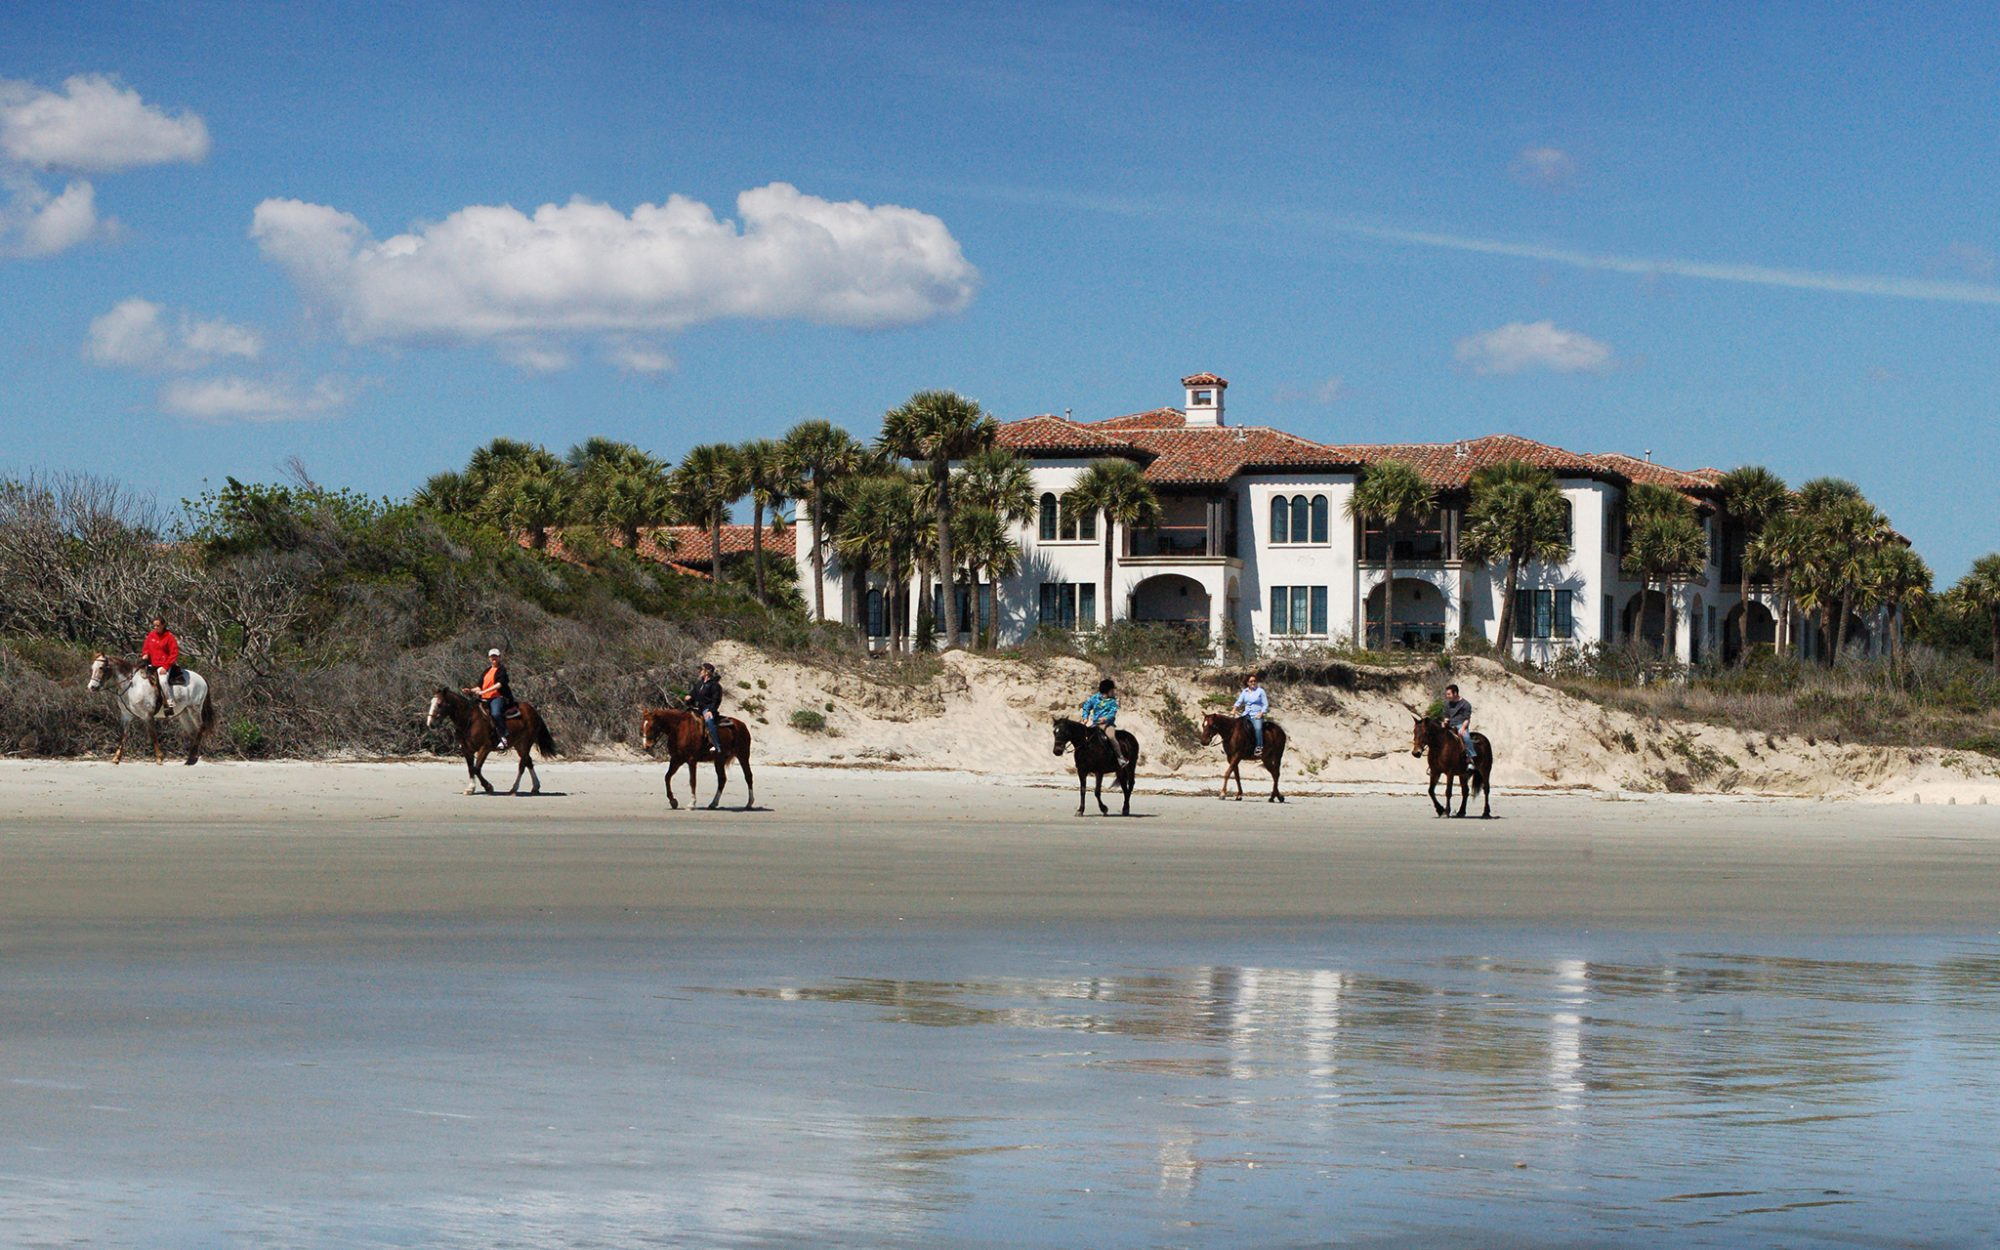 Best Family Beach Hotels: No. 4 Cloister at Sea Island, GA